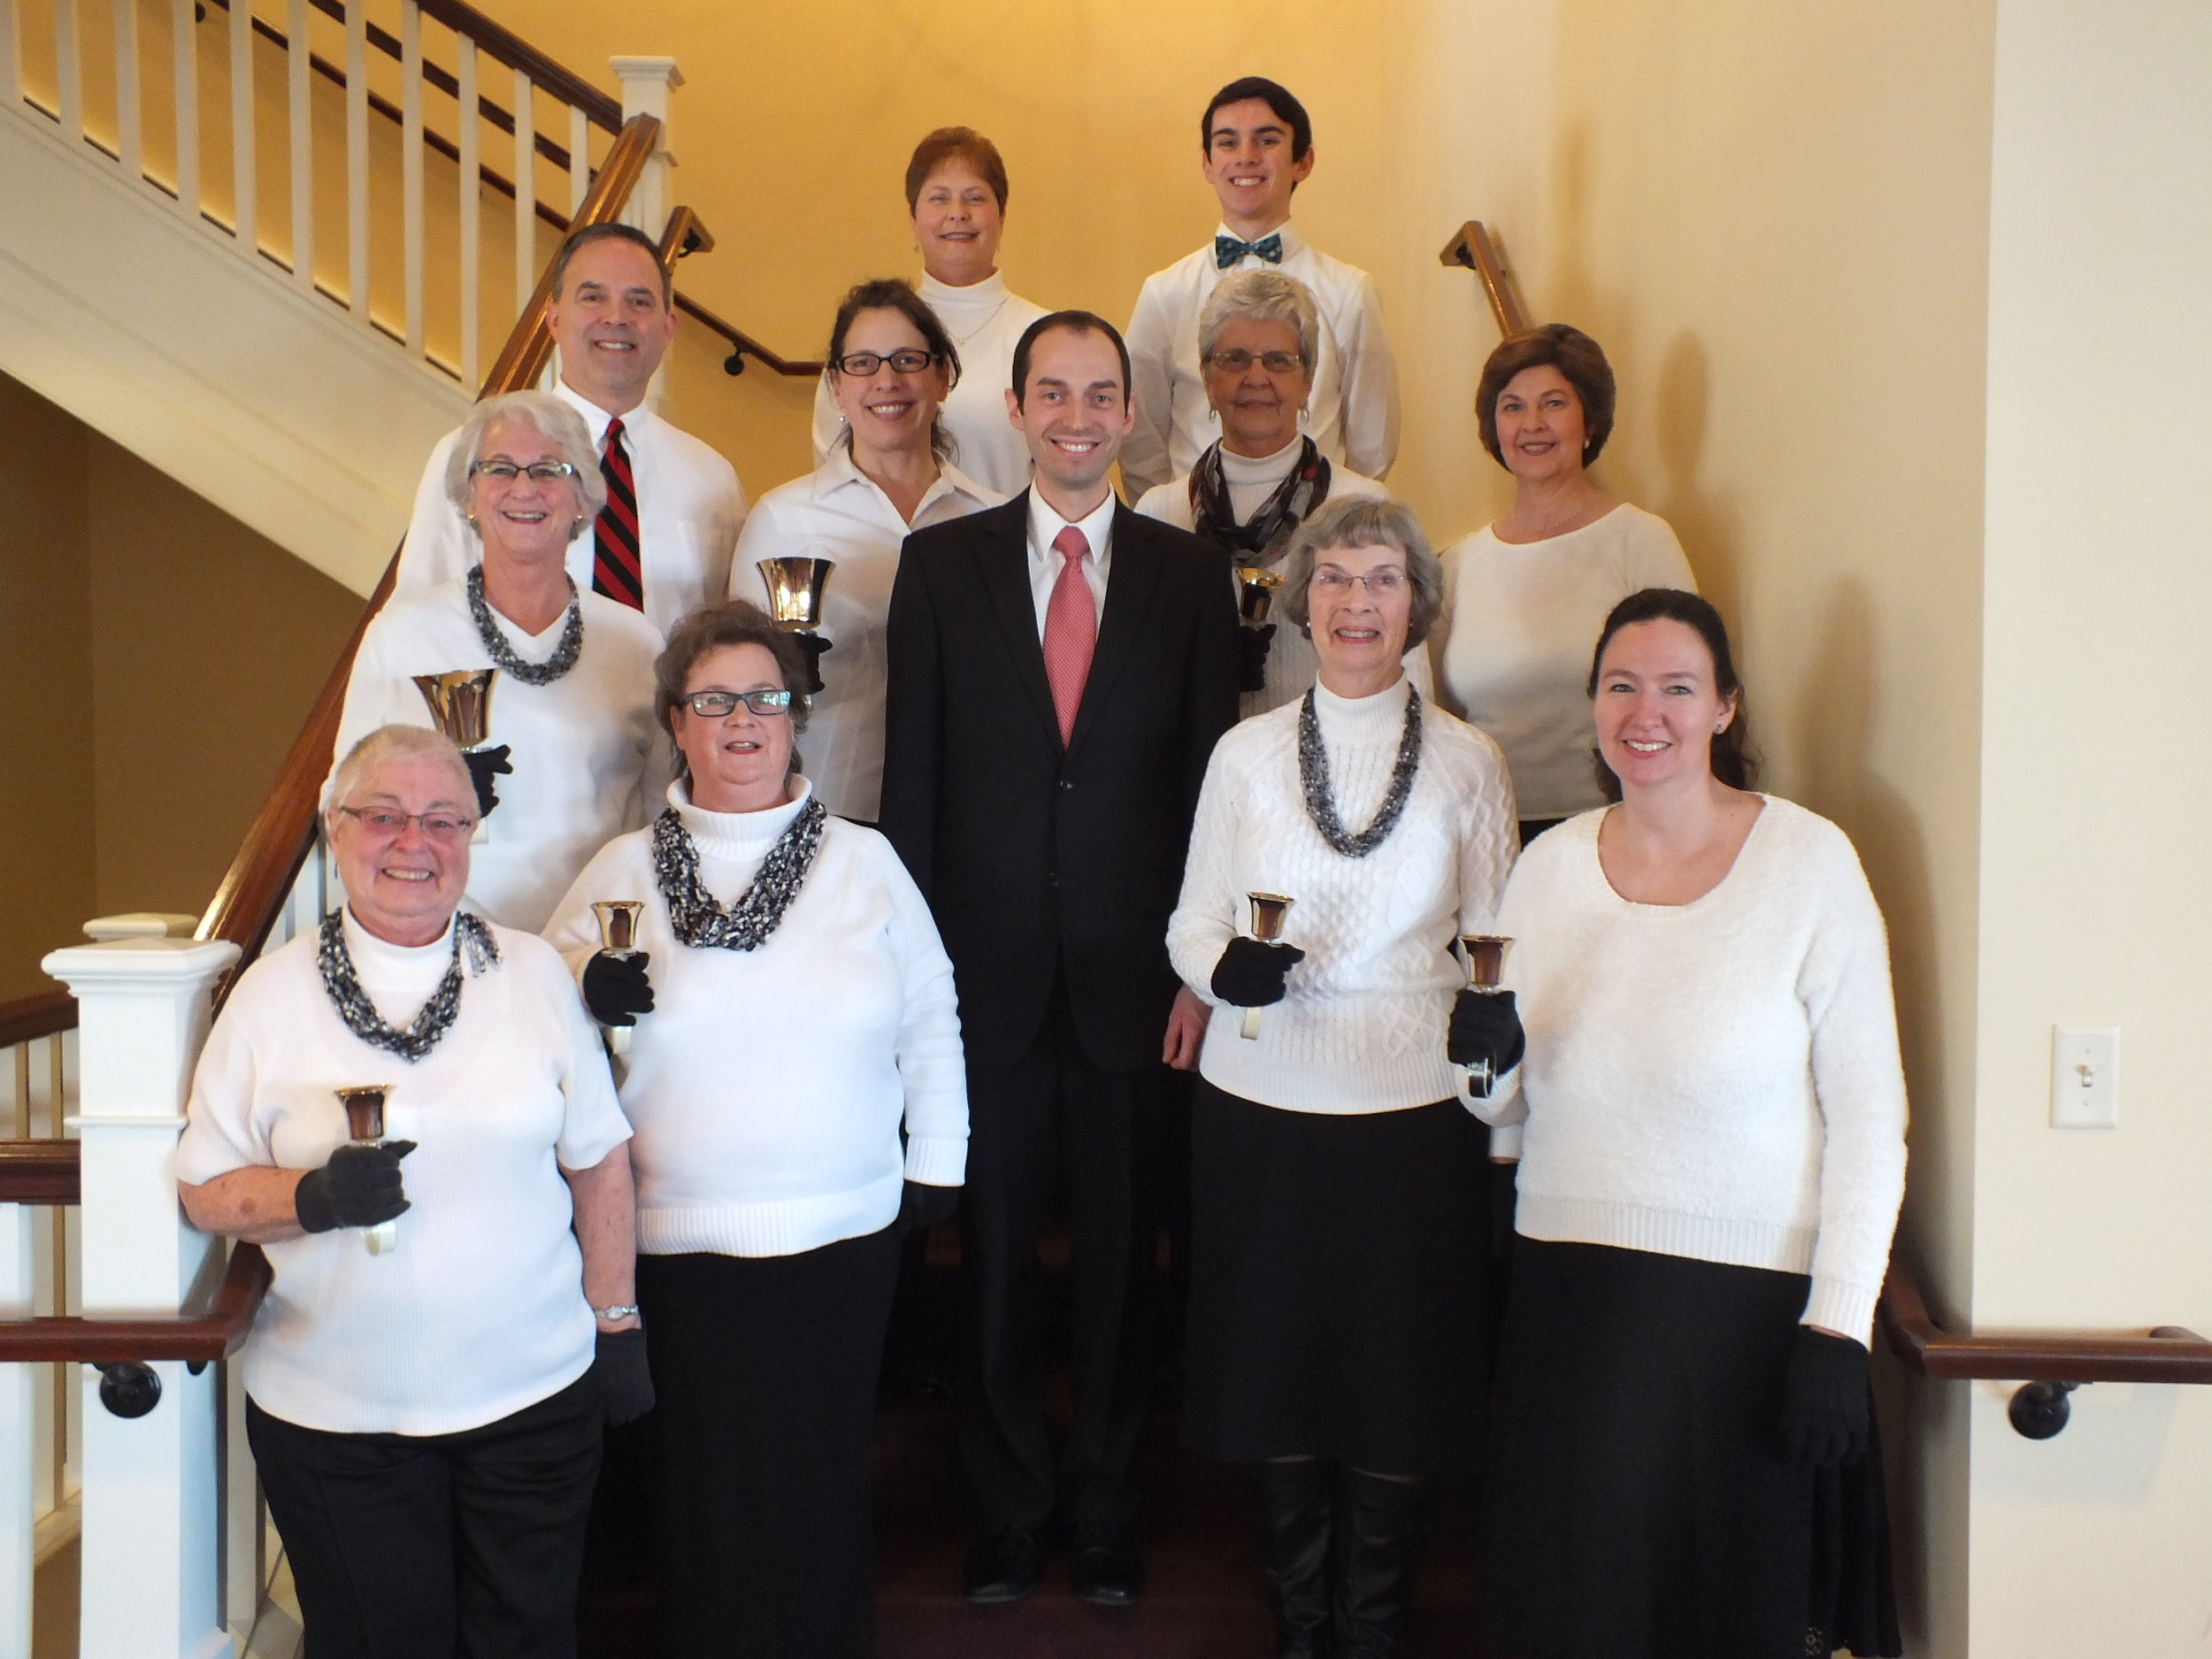 Westminster Ringers - For more experienced ringers of all ages.Rehearses Tuesdays from 7:15-8:30 p.m